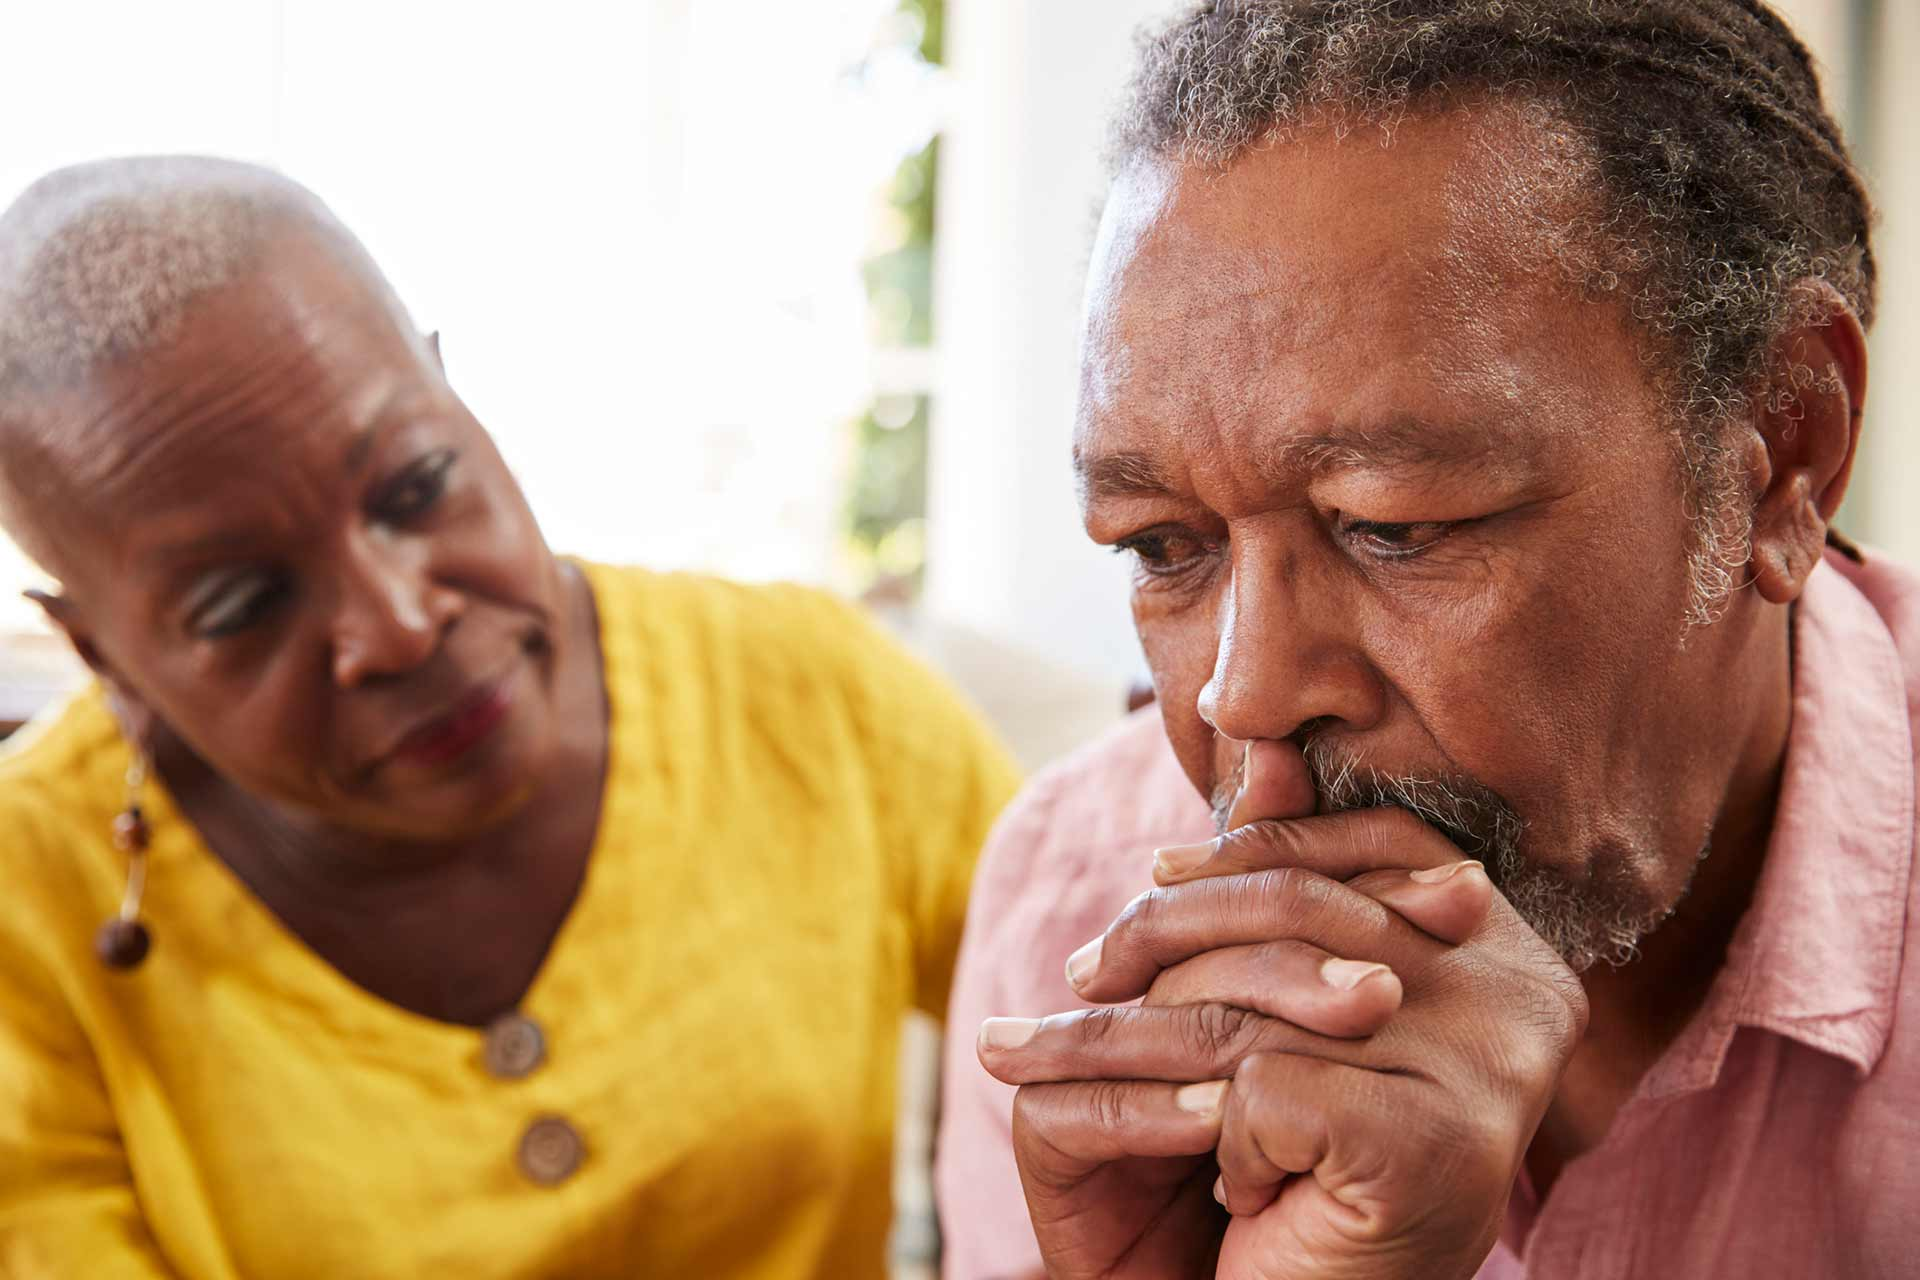 Caring giving spouse managing the impacts of her husband's dementia diagnosis